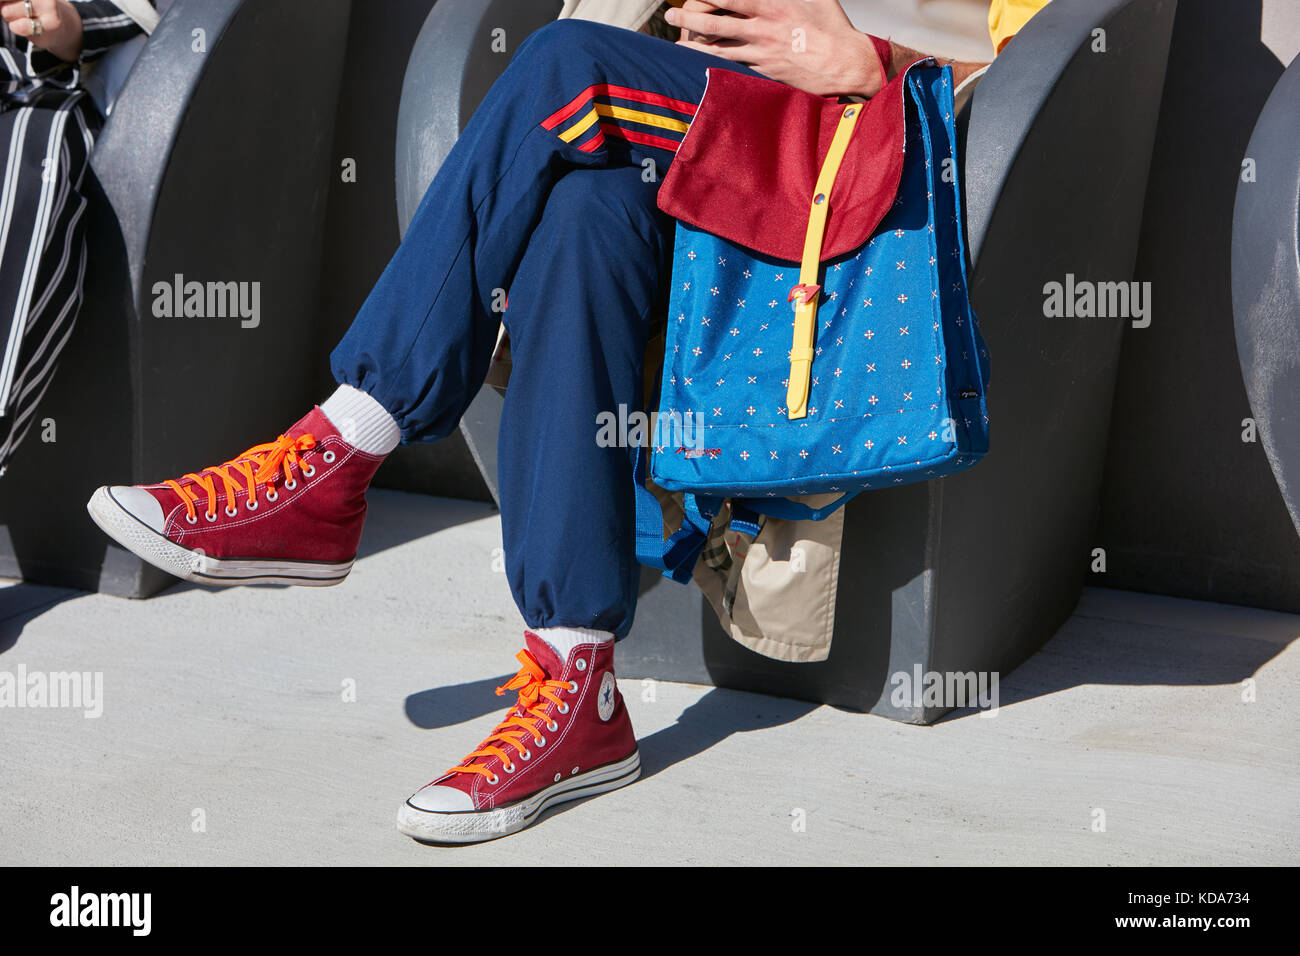 dee8e3d33d0 MILAN - SEPTEMBER 20  Man with Natwee red and blue backpack and red Converse  shoes